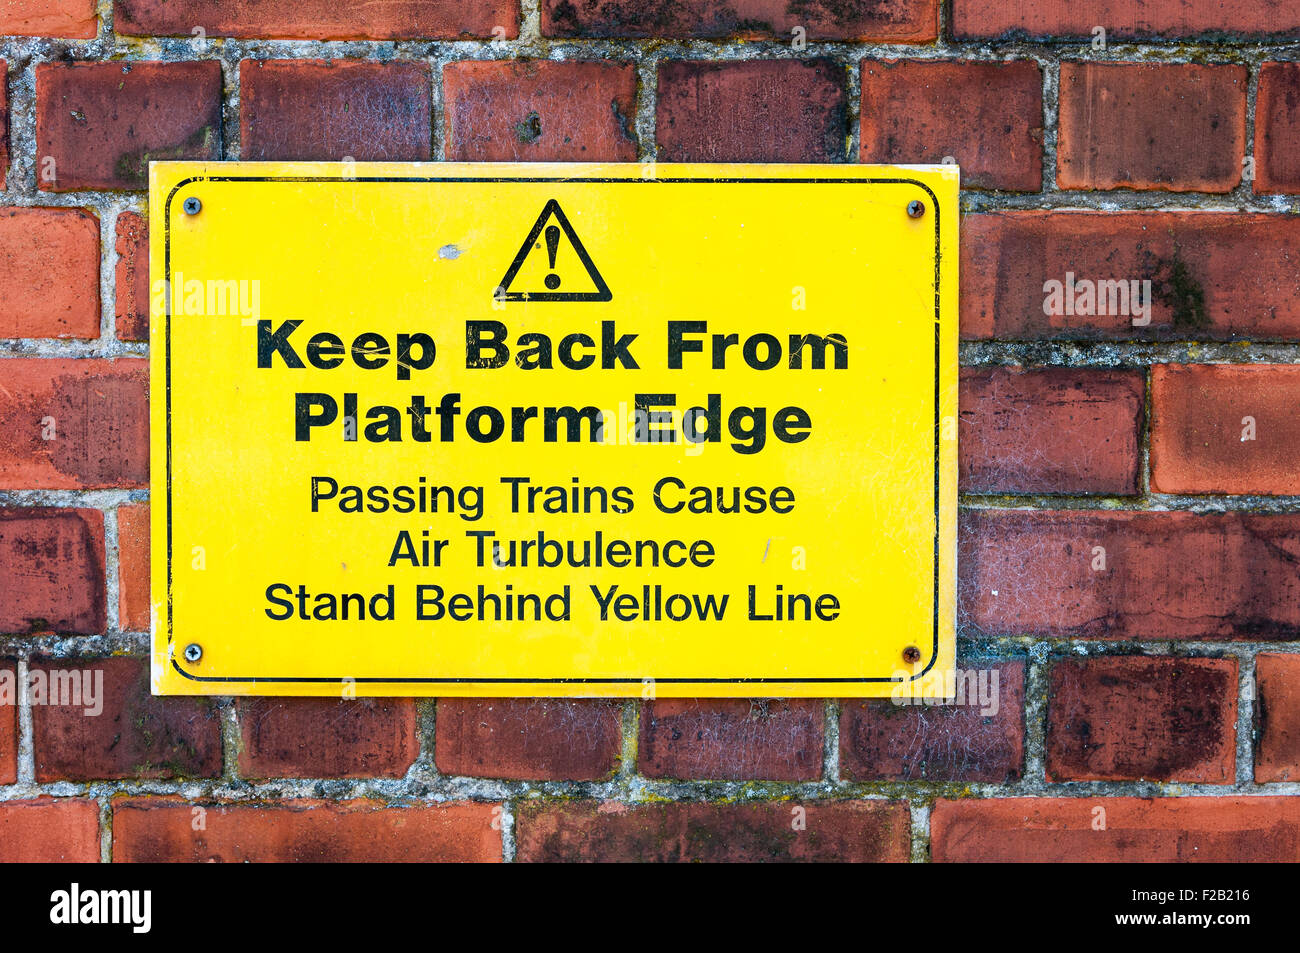 Sign at a railway platform warning passengers to keep back from the edge and to stand behind yellow line. - Stock Image